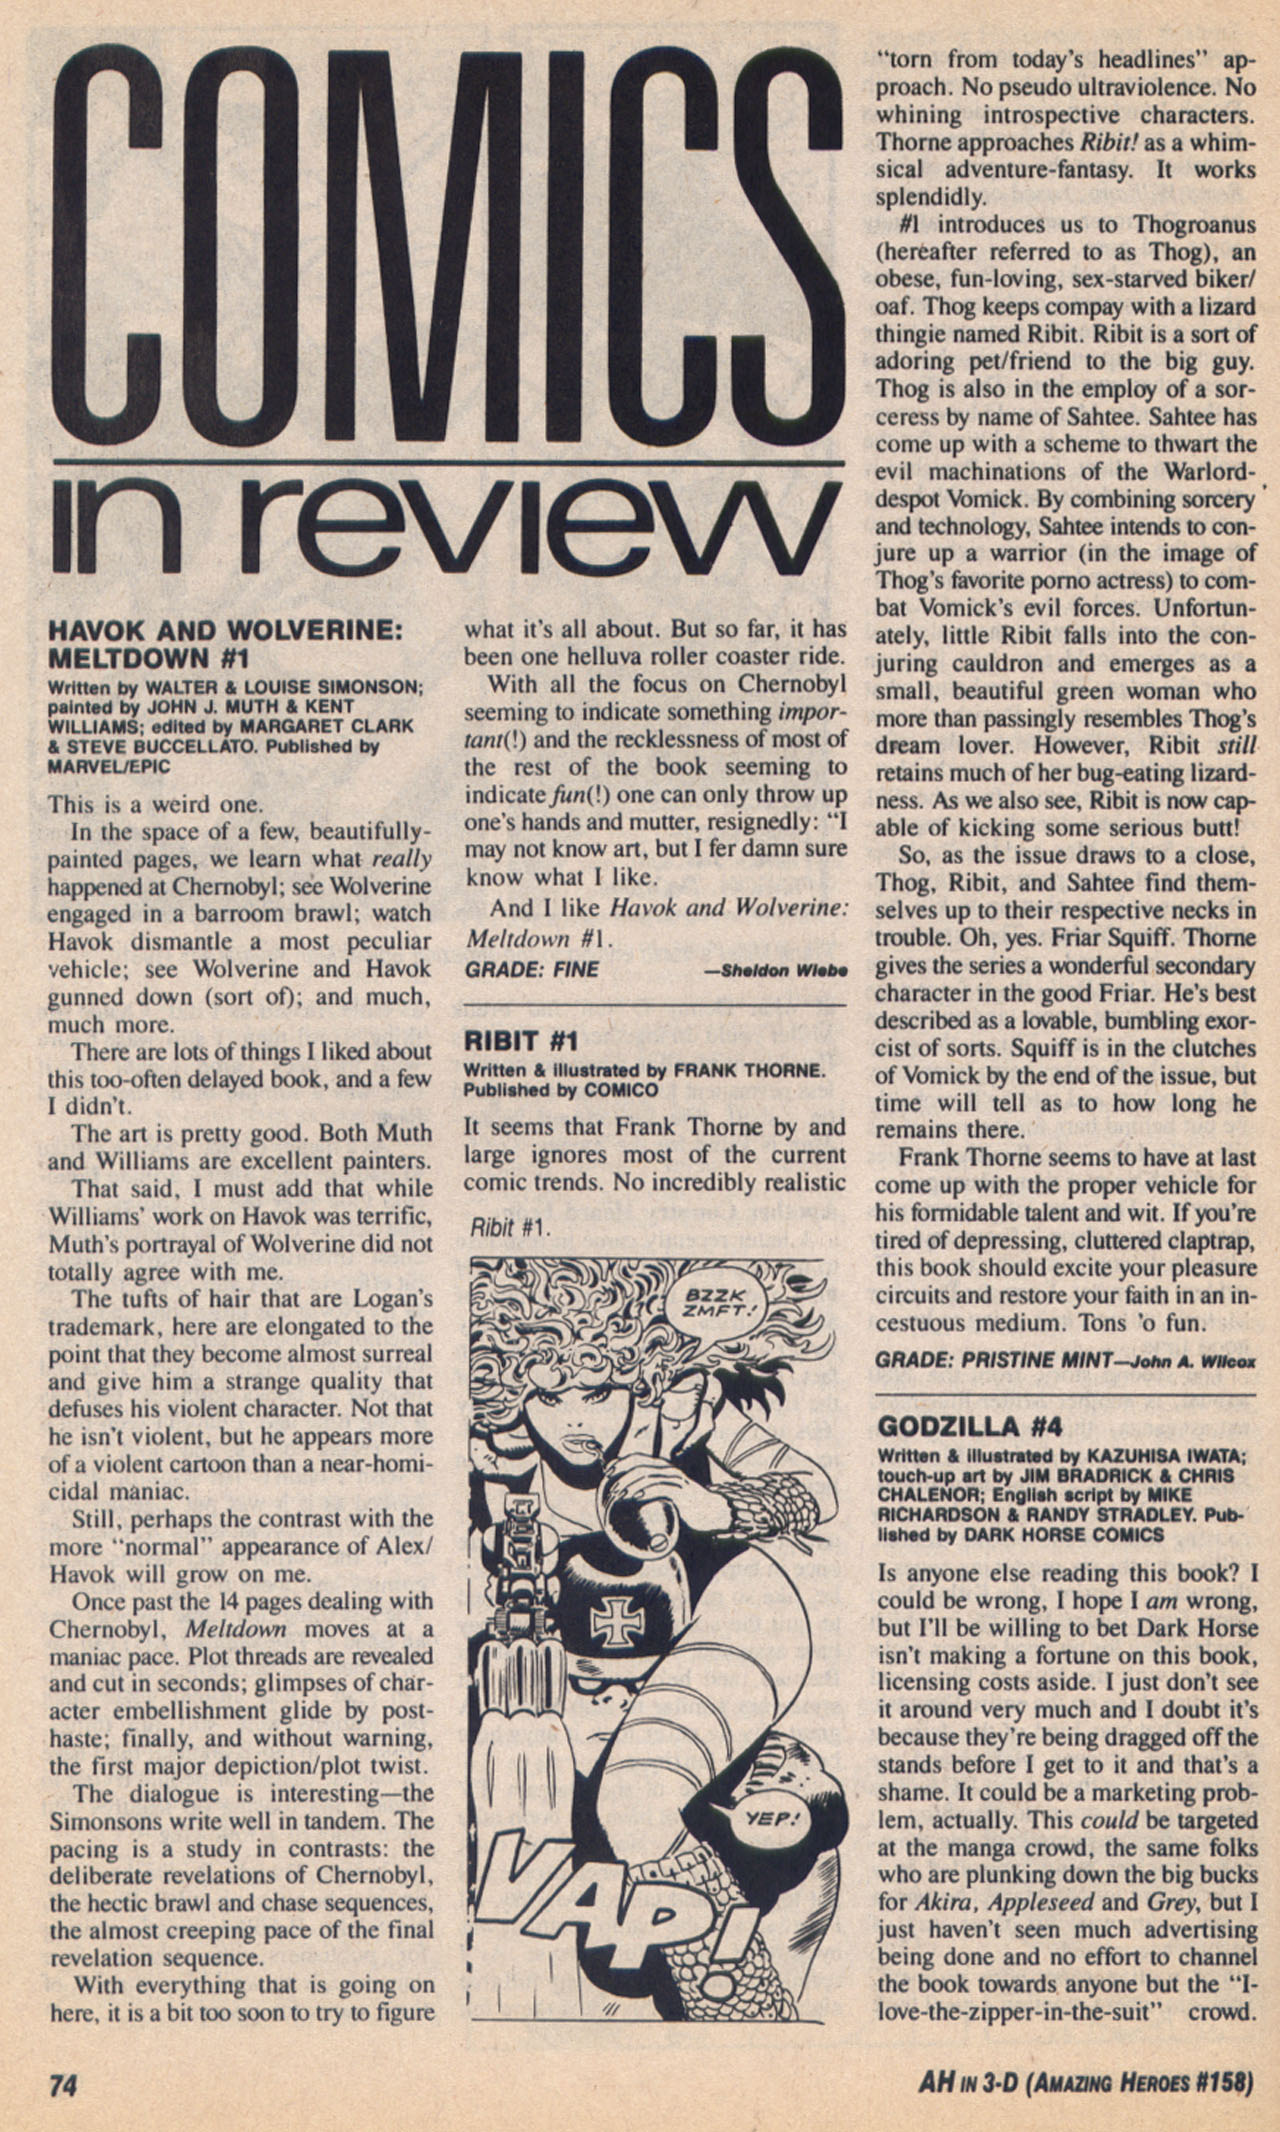 Read online Amazing Heroes comic -  Issue #158 - 75